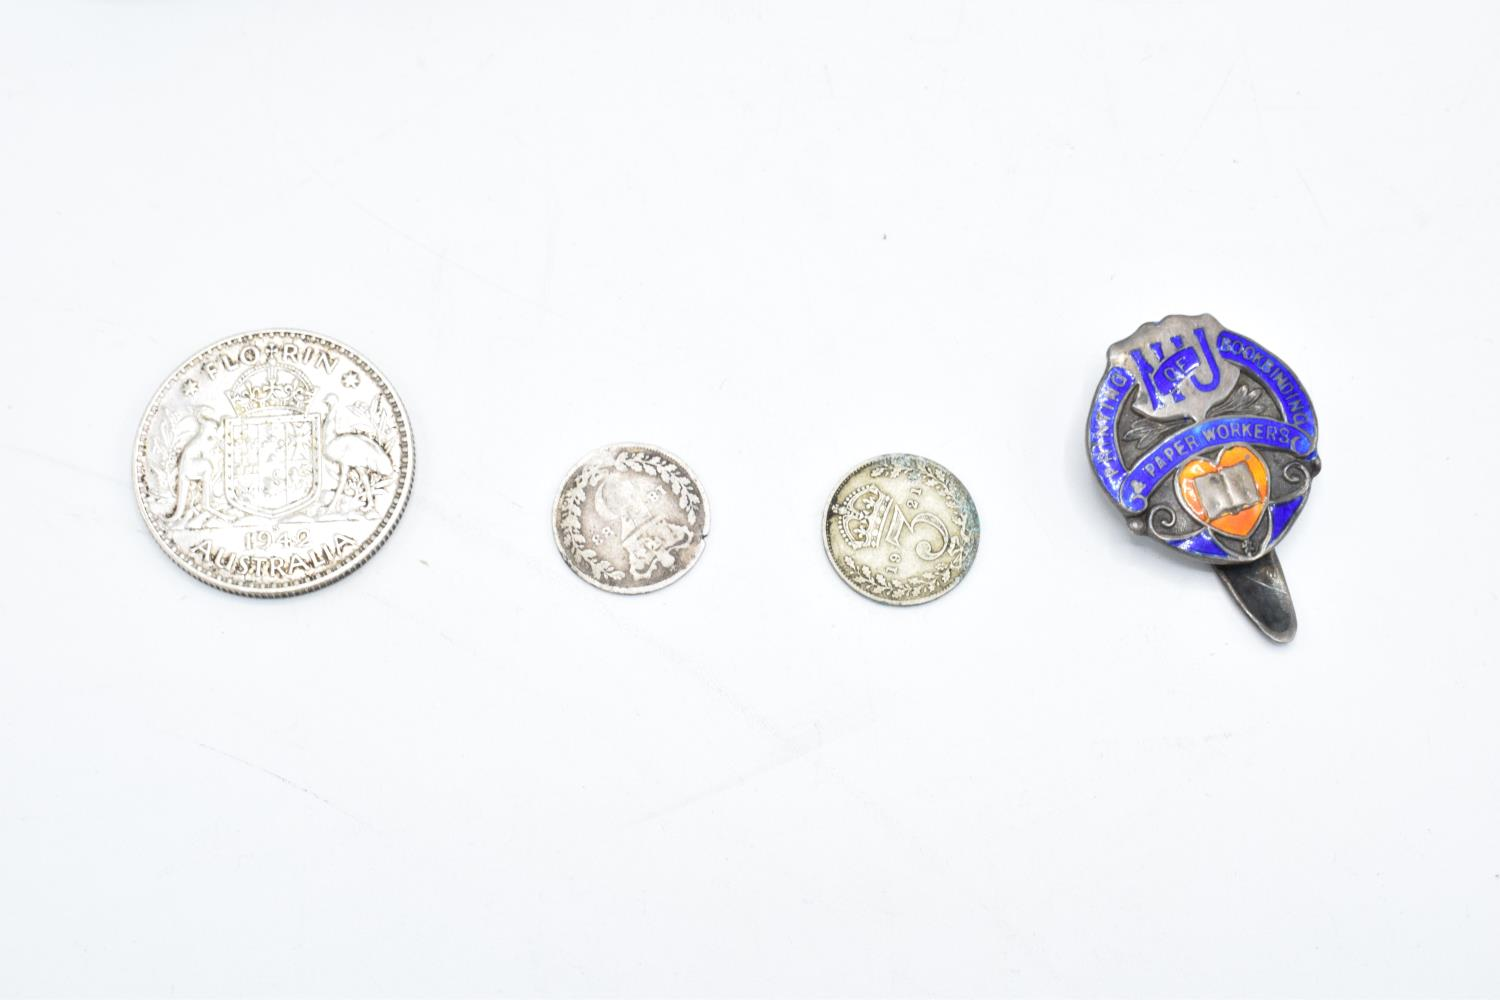 A mixed collection of items to include a hallmarked silver badge, 3 silver coins, a collection of - Image 2 of 4